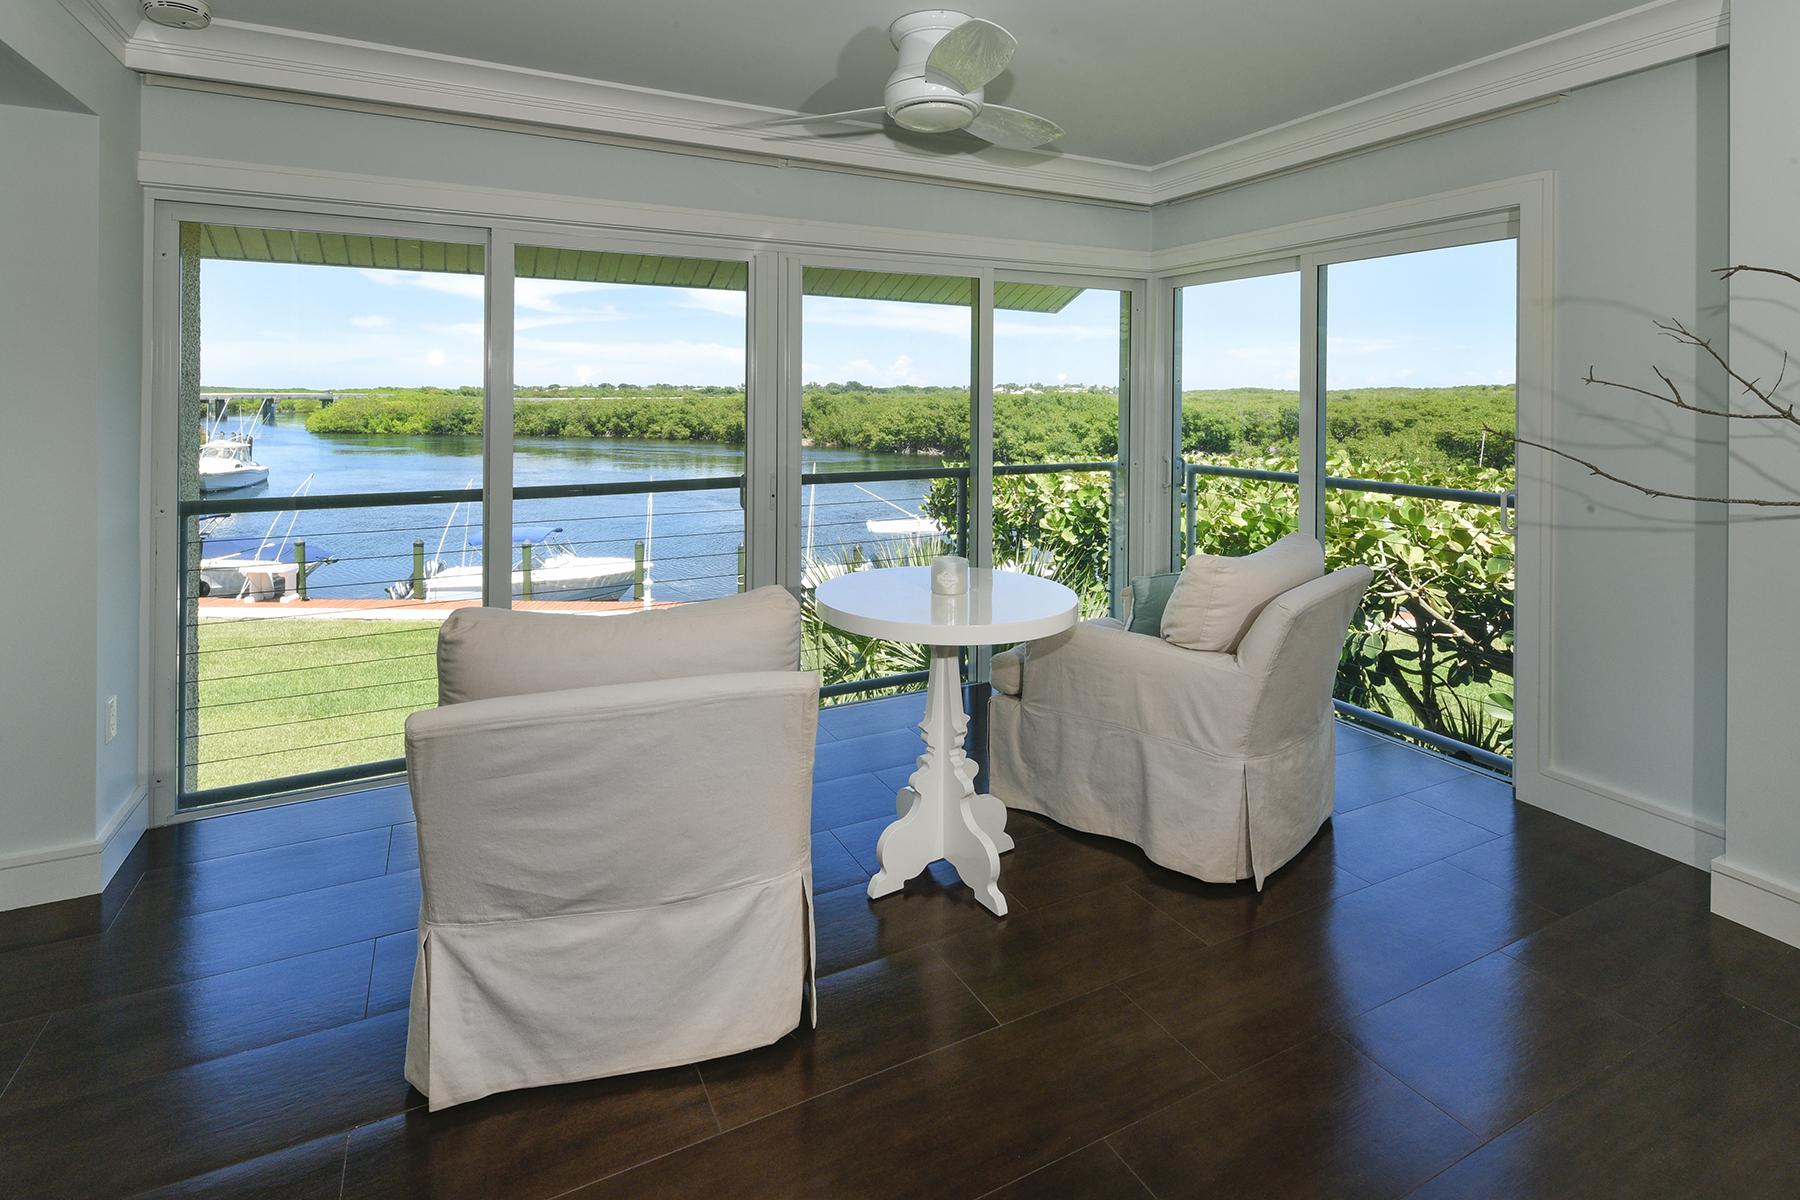 Condominium for Sale at Fabulously Renovated Condominium at Ocean Reef 15 Pumpkin Cay Road, Unit B Ocean Reef Community, Key Largo, Florida, 33037 United States